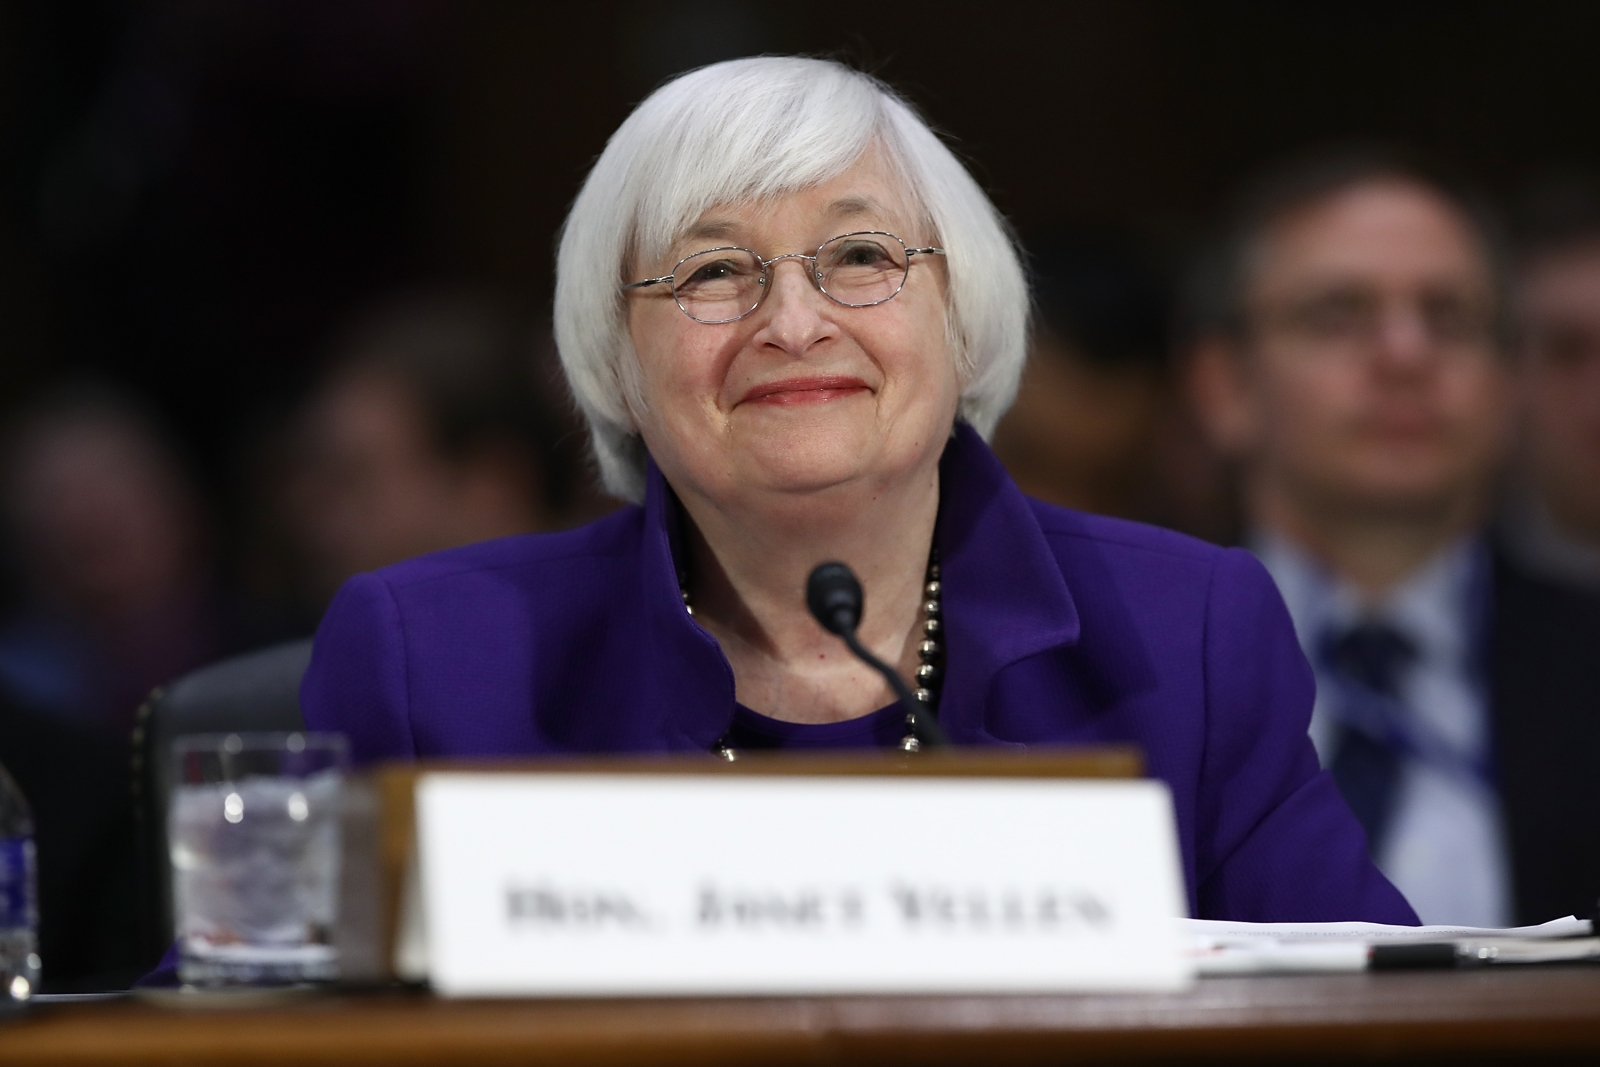 Janet Yellen testifies to senate committee